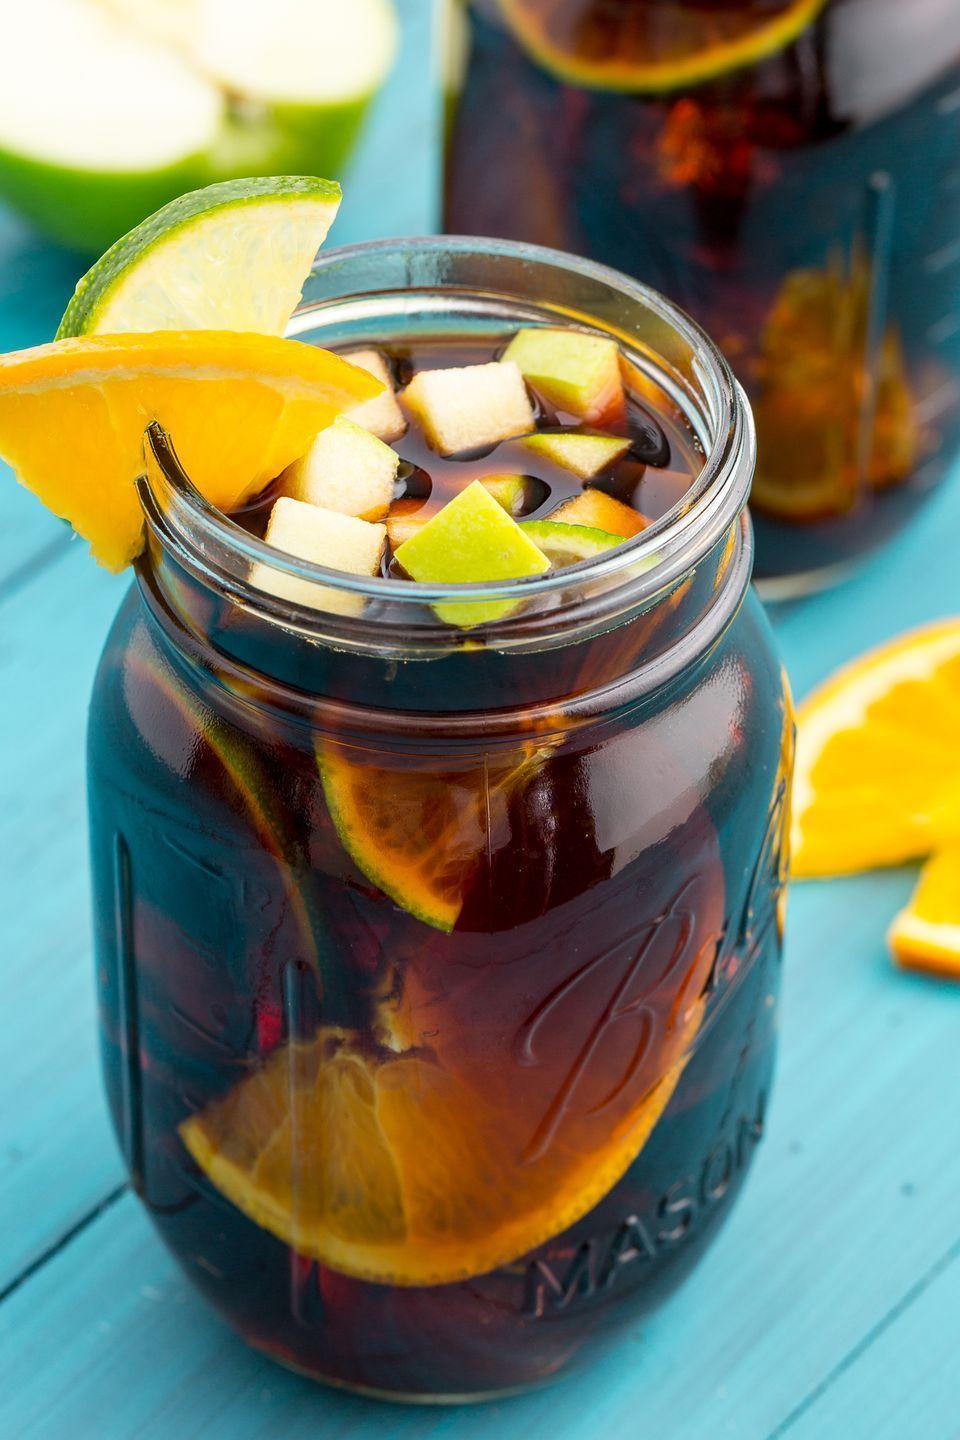 """<p>It's the coffee trend you MUST try. Trust.</p><p>Get the recipe from <a href=""""https://www.delish.com/cooking/recipes/a47528/cold-brew-sangria-recipe/"""" rel=""""nofollow noopener"""" target=""""_blank"""" data-ylk=""""slk:Delish"""" class=""""link rapid-noclick-resp"""">Delish</a>.</p>"""